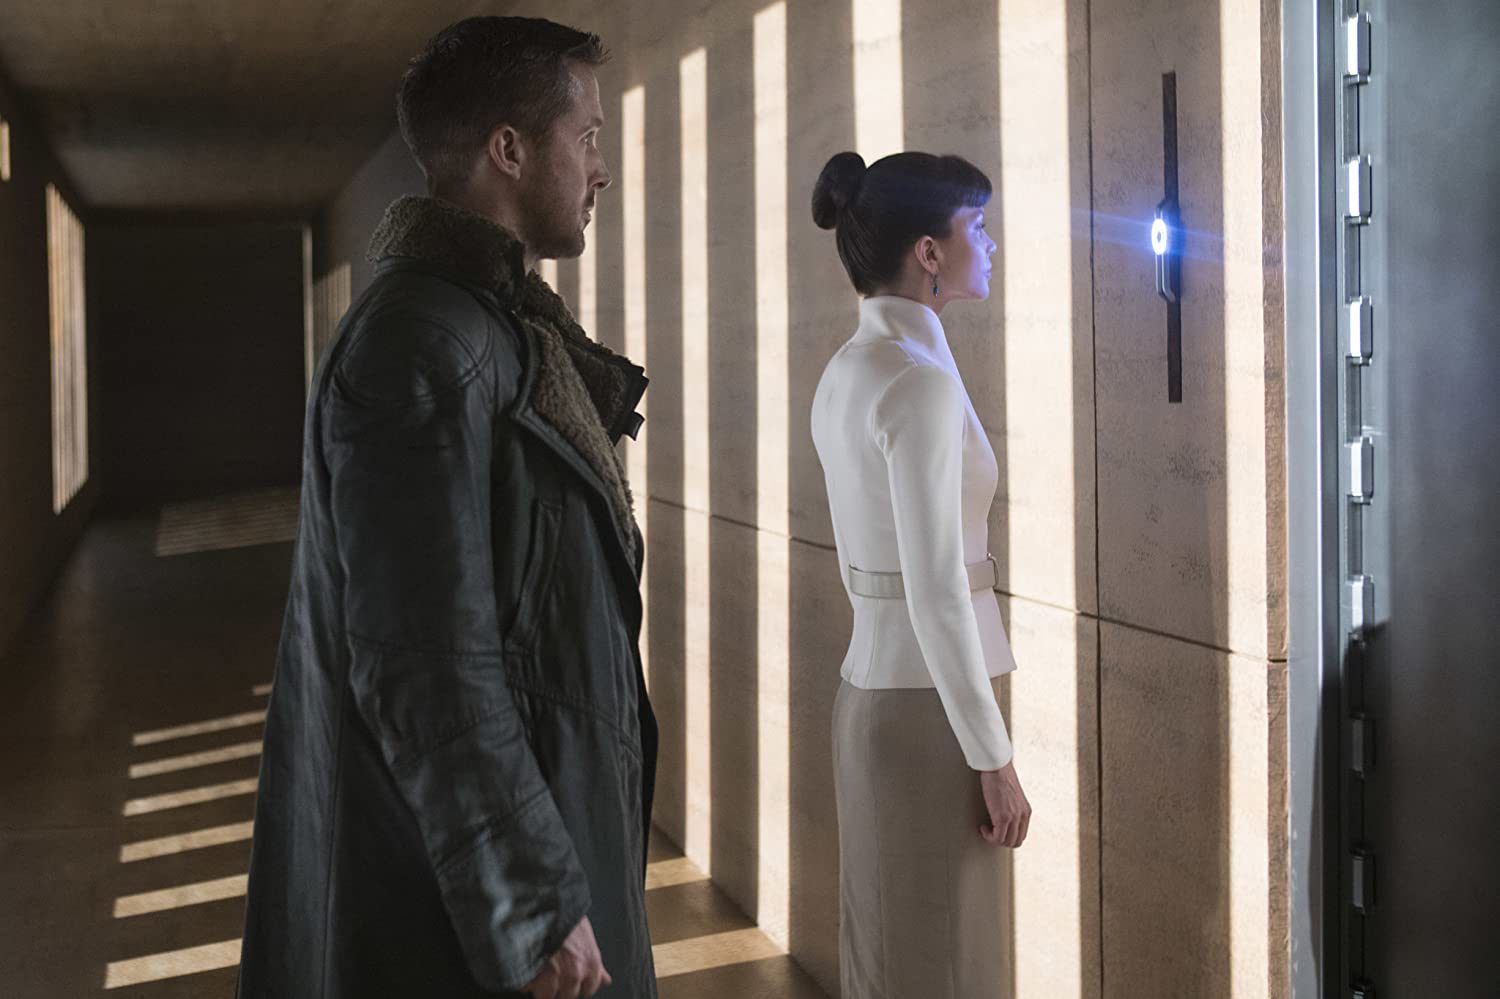 Ryan Gosling and Sylvia Hoeks in Blade Runner 2049 (2017)